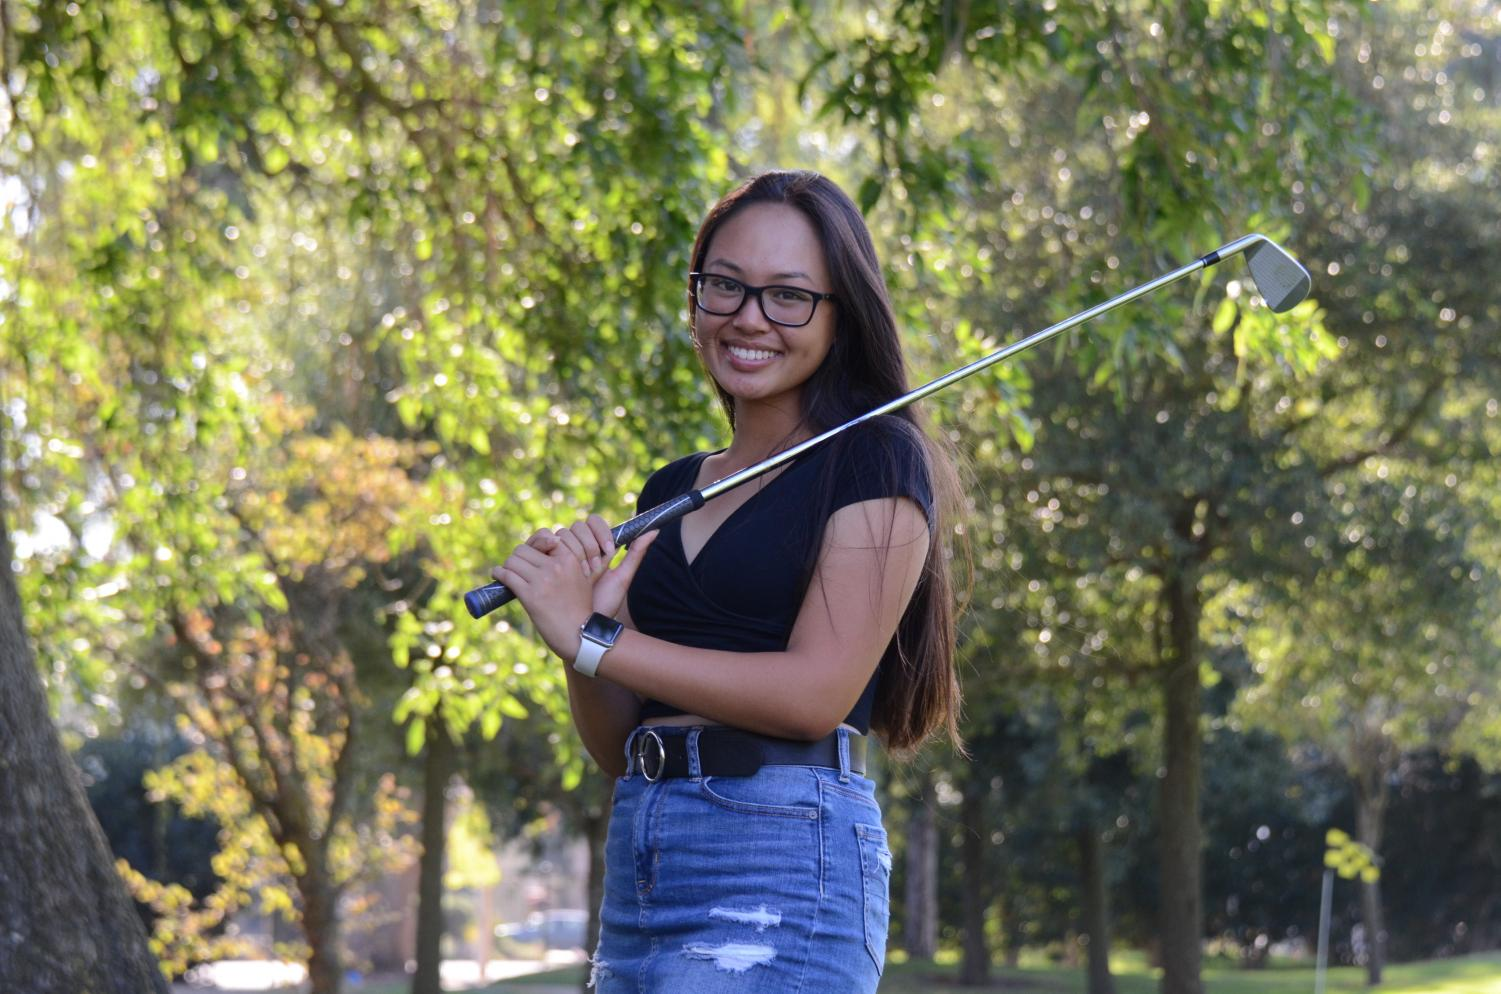 """""""When I was younger, whenever I wasn't playing well, I'd let myself break down on the course, but I had to learn that it's okay. One bad hole isn't going to ruin the entire round. I feel like that's really representative of real life too. One bad day isn't going to ruin the rest of my life. [With golf], I've really had to learn how to bounce back from any obstacles that come in my way,"""" Katelyn Vo (12) said."""